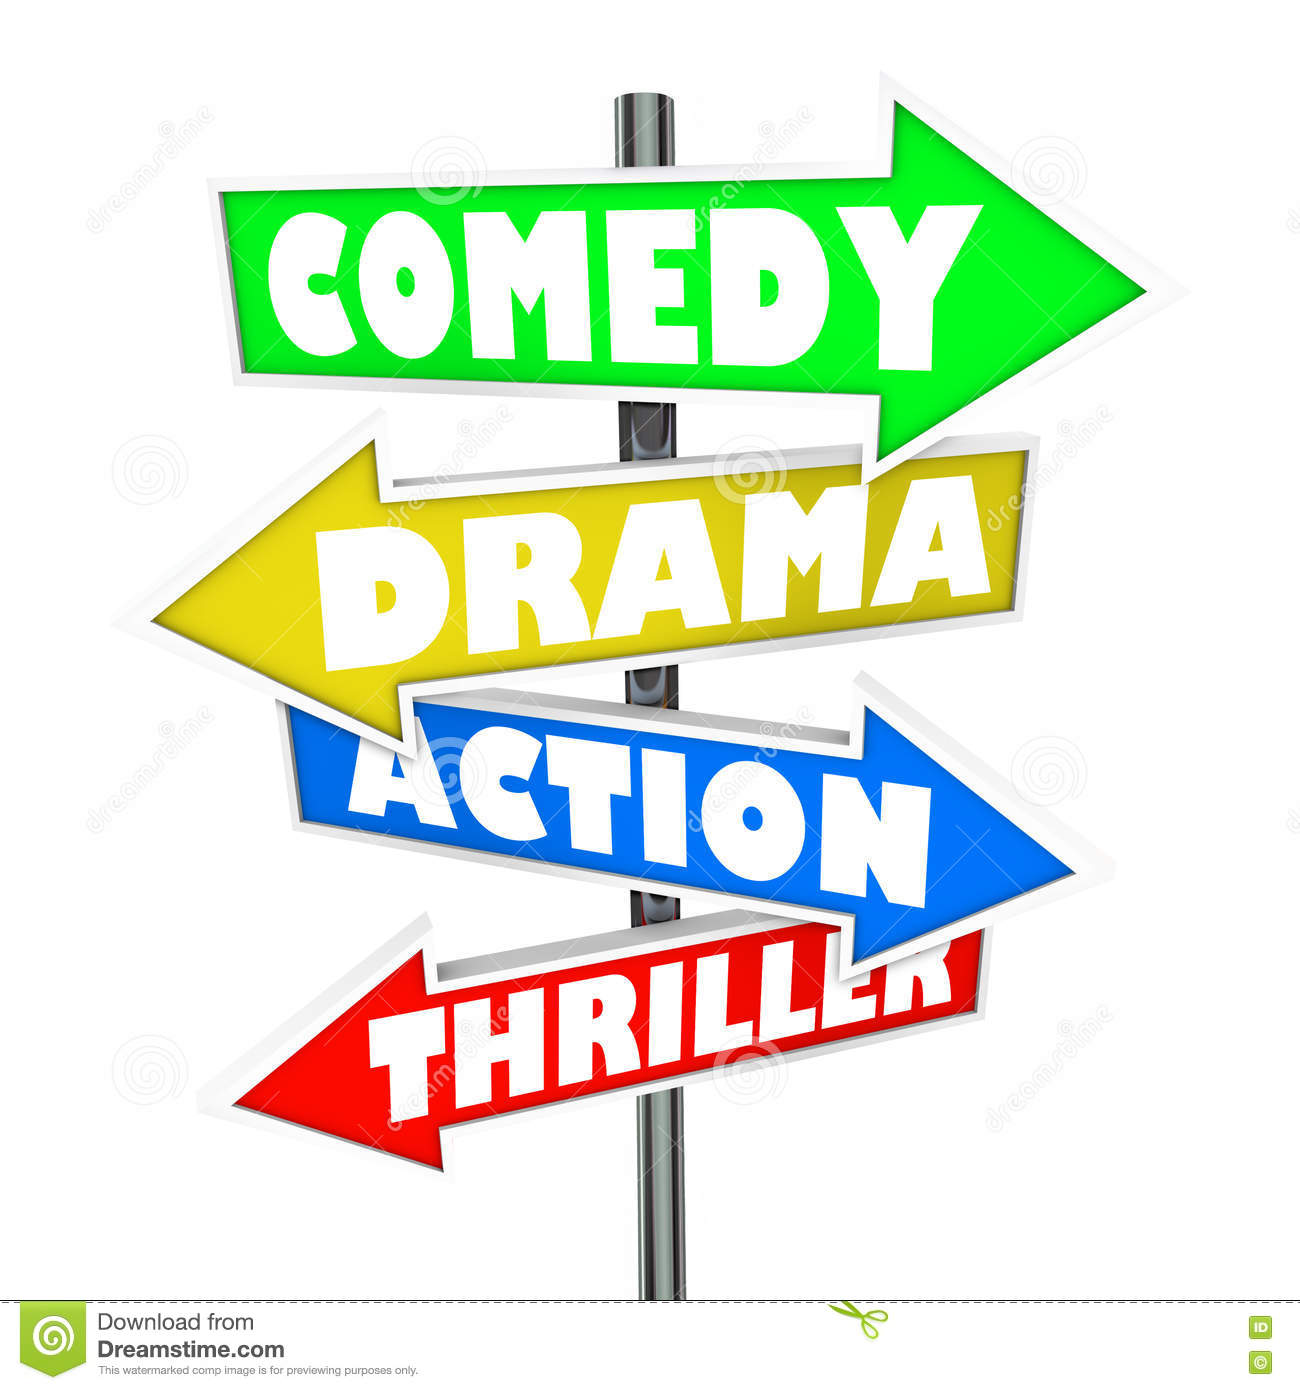 comedy drama action thriller movie genre signs stock